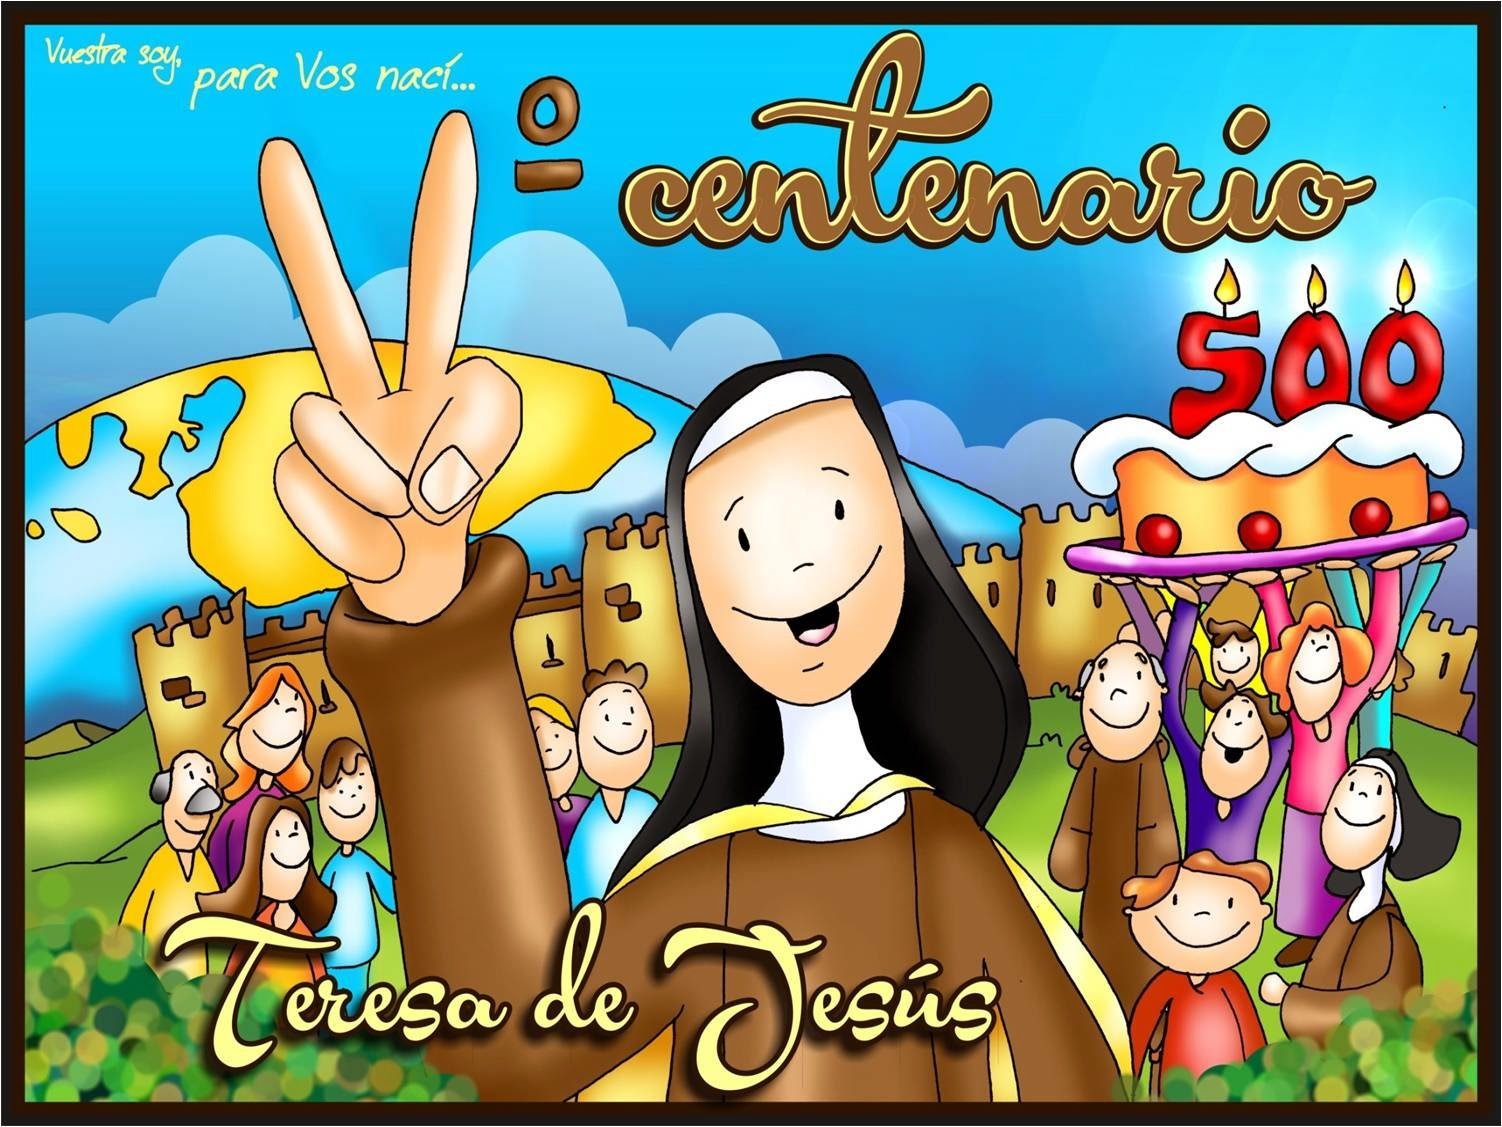 file:///C:/Users/Yolanda/Documents/Presentations/Teresa%20de%20Jes%C3%BAs%20V%20centenario/index.html